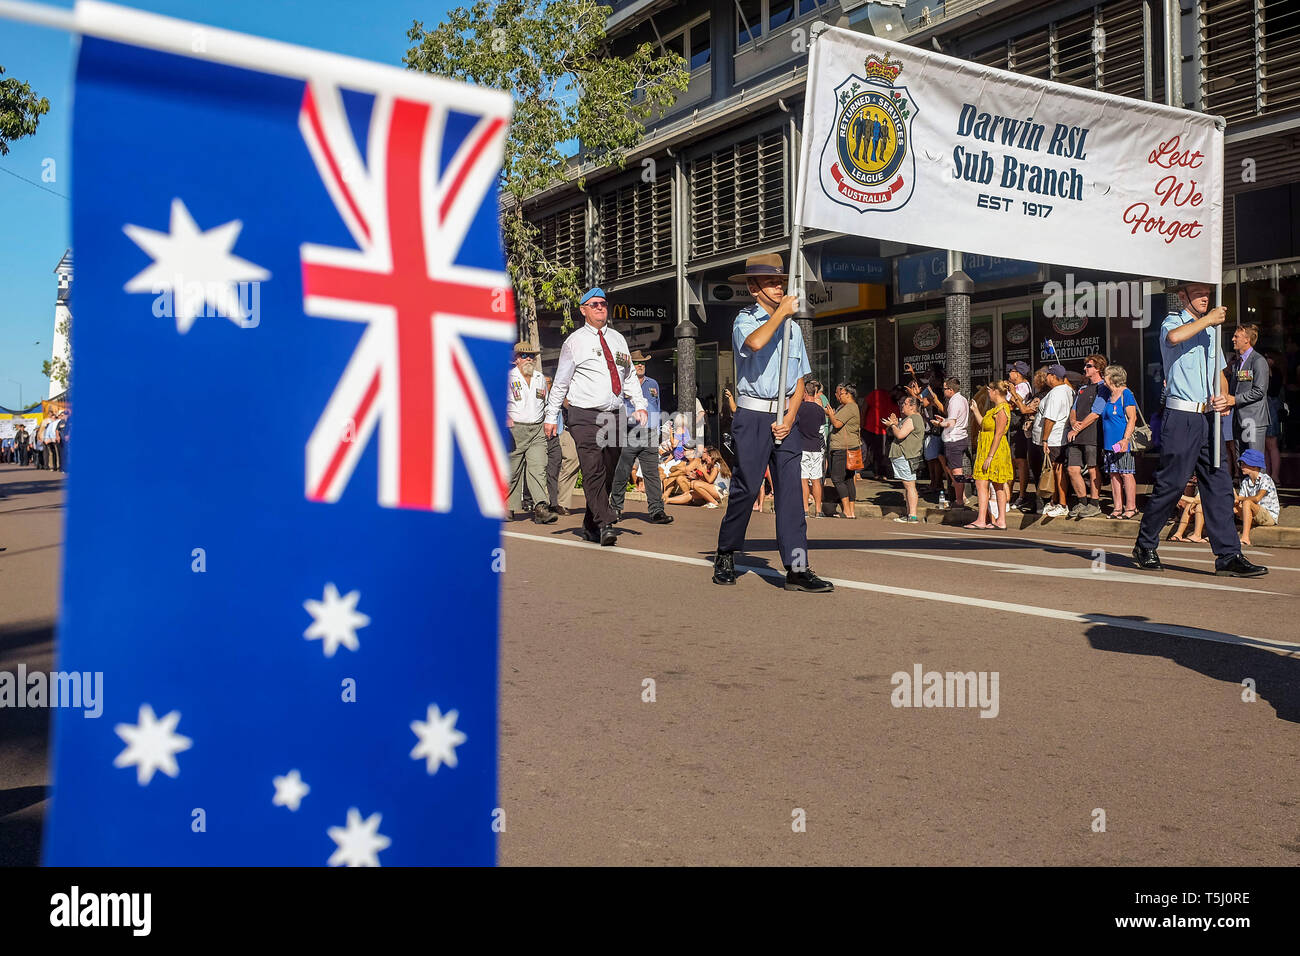 ANZAC Day parade in Knuckey street in Darwin, the capital city of the Northern Territory of Australia - 2019.04.25 - Stock Image